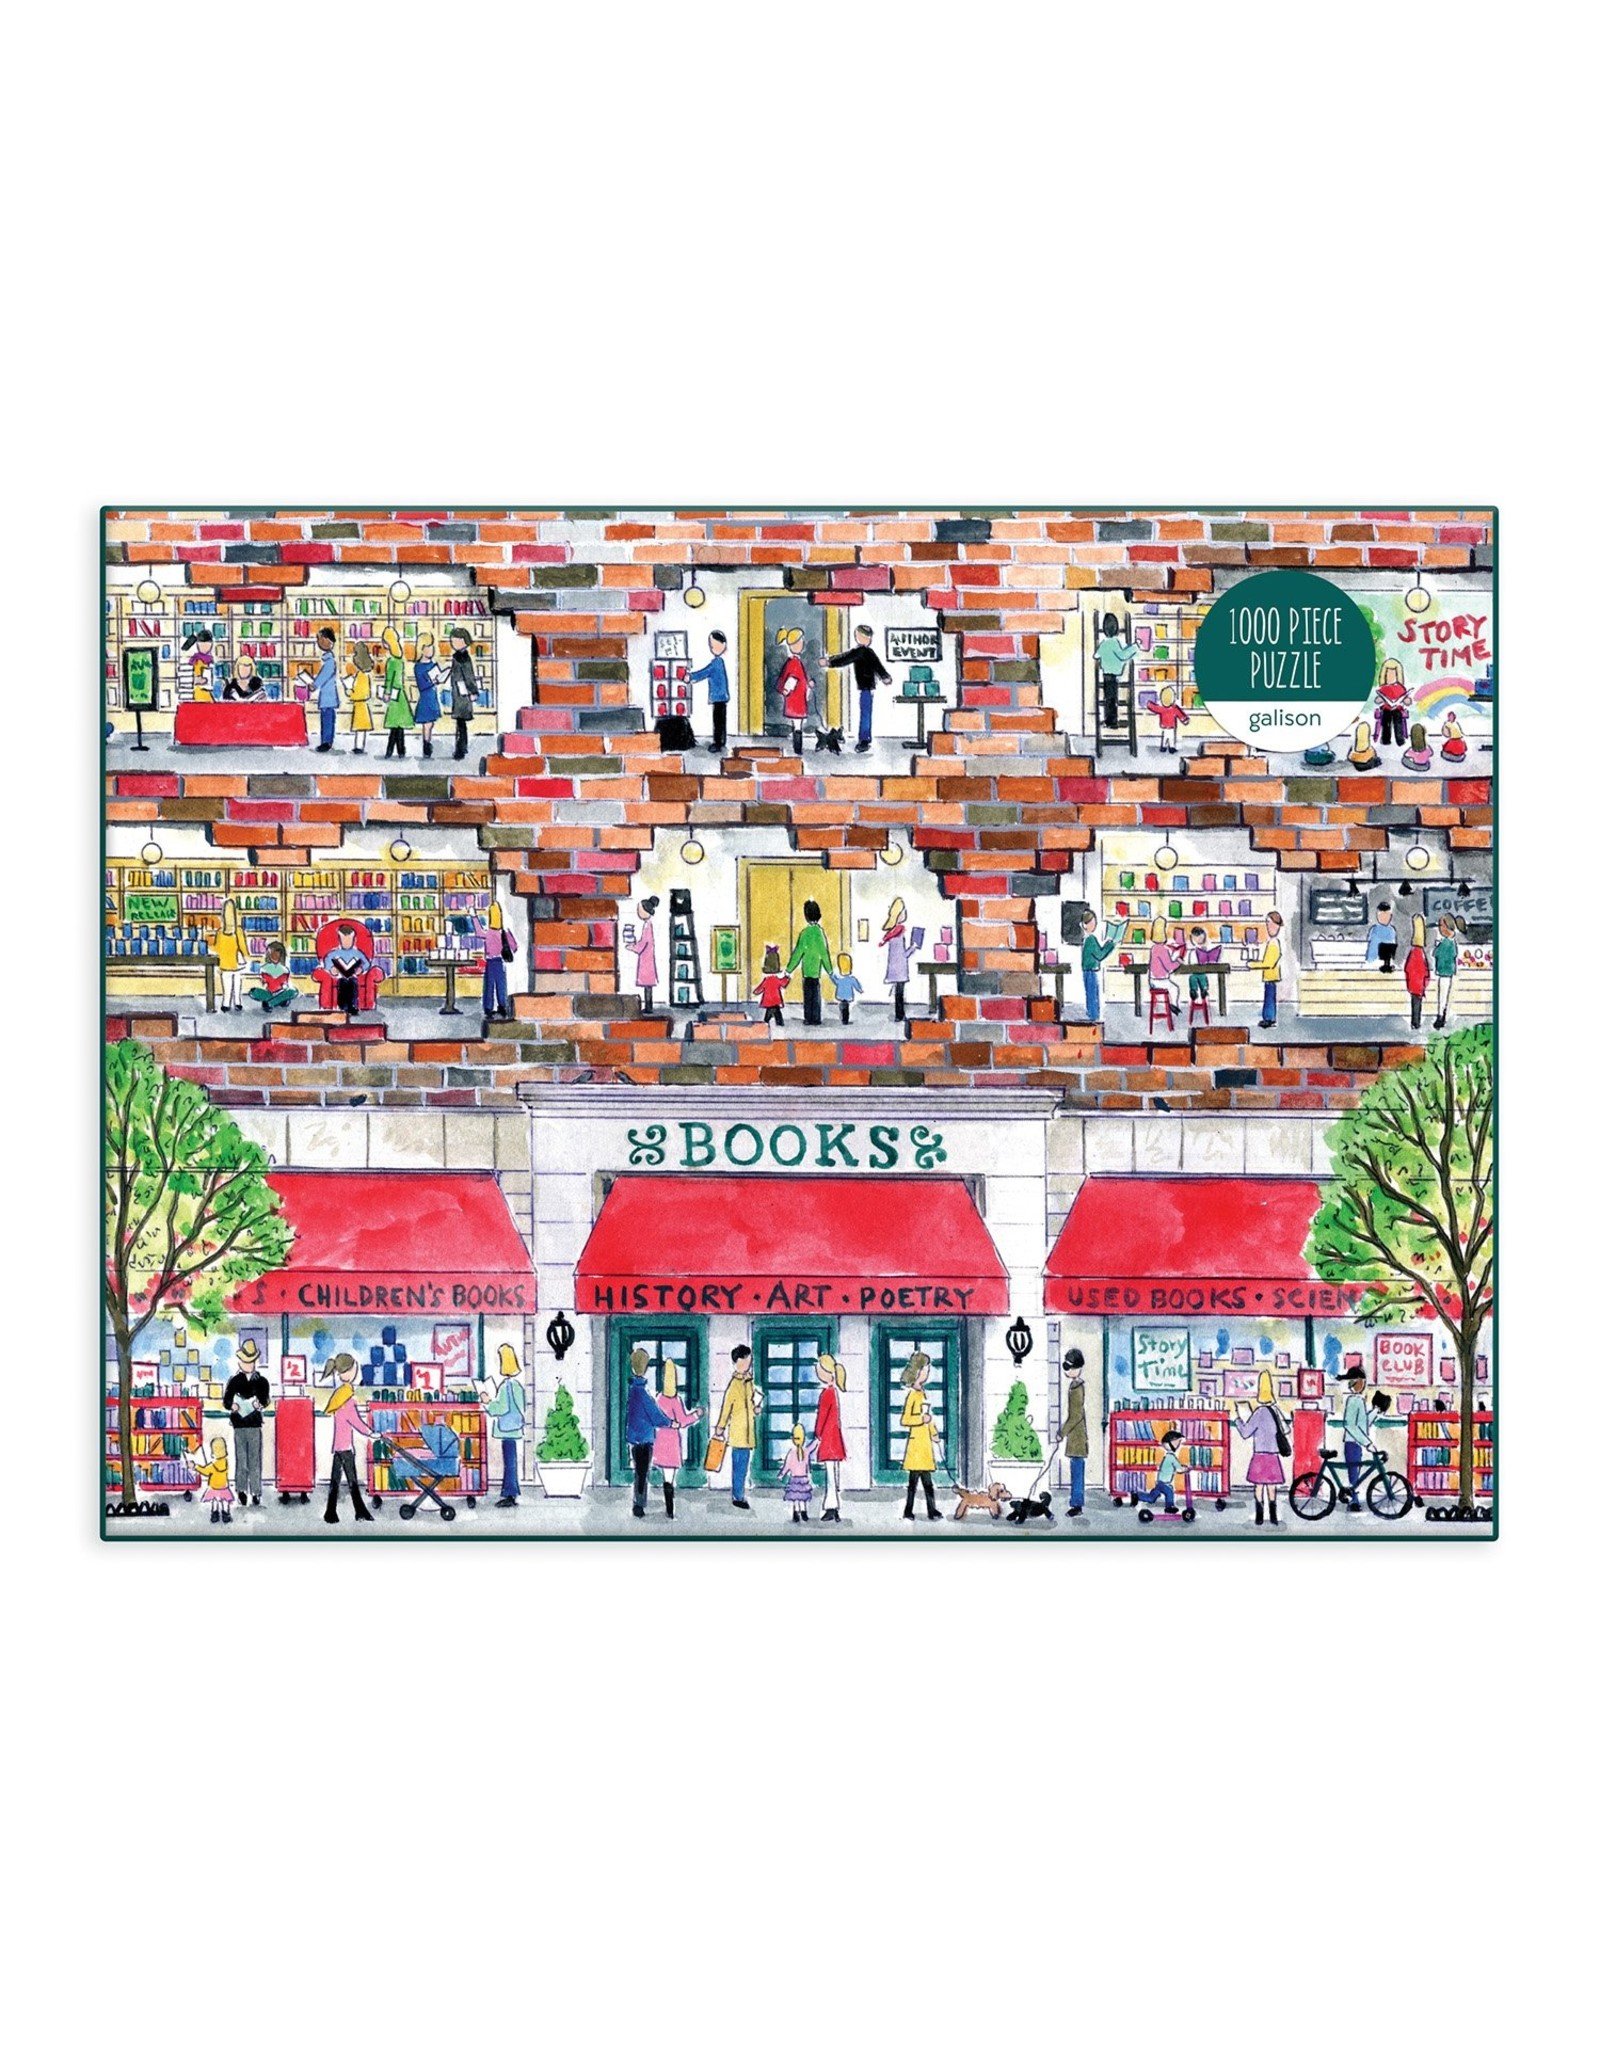 Galison Michael Storrings A Day at the Bookstore 1000 Piece Puzzle